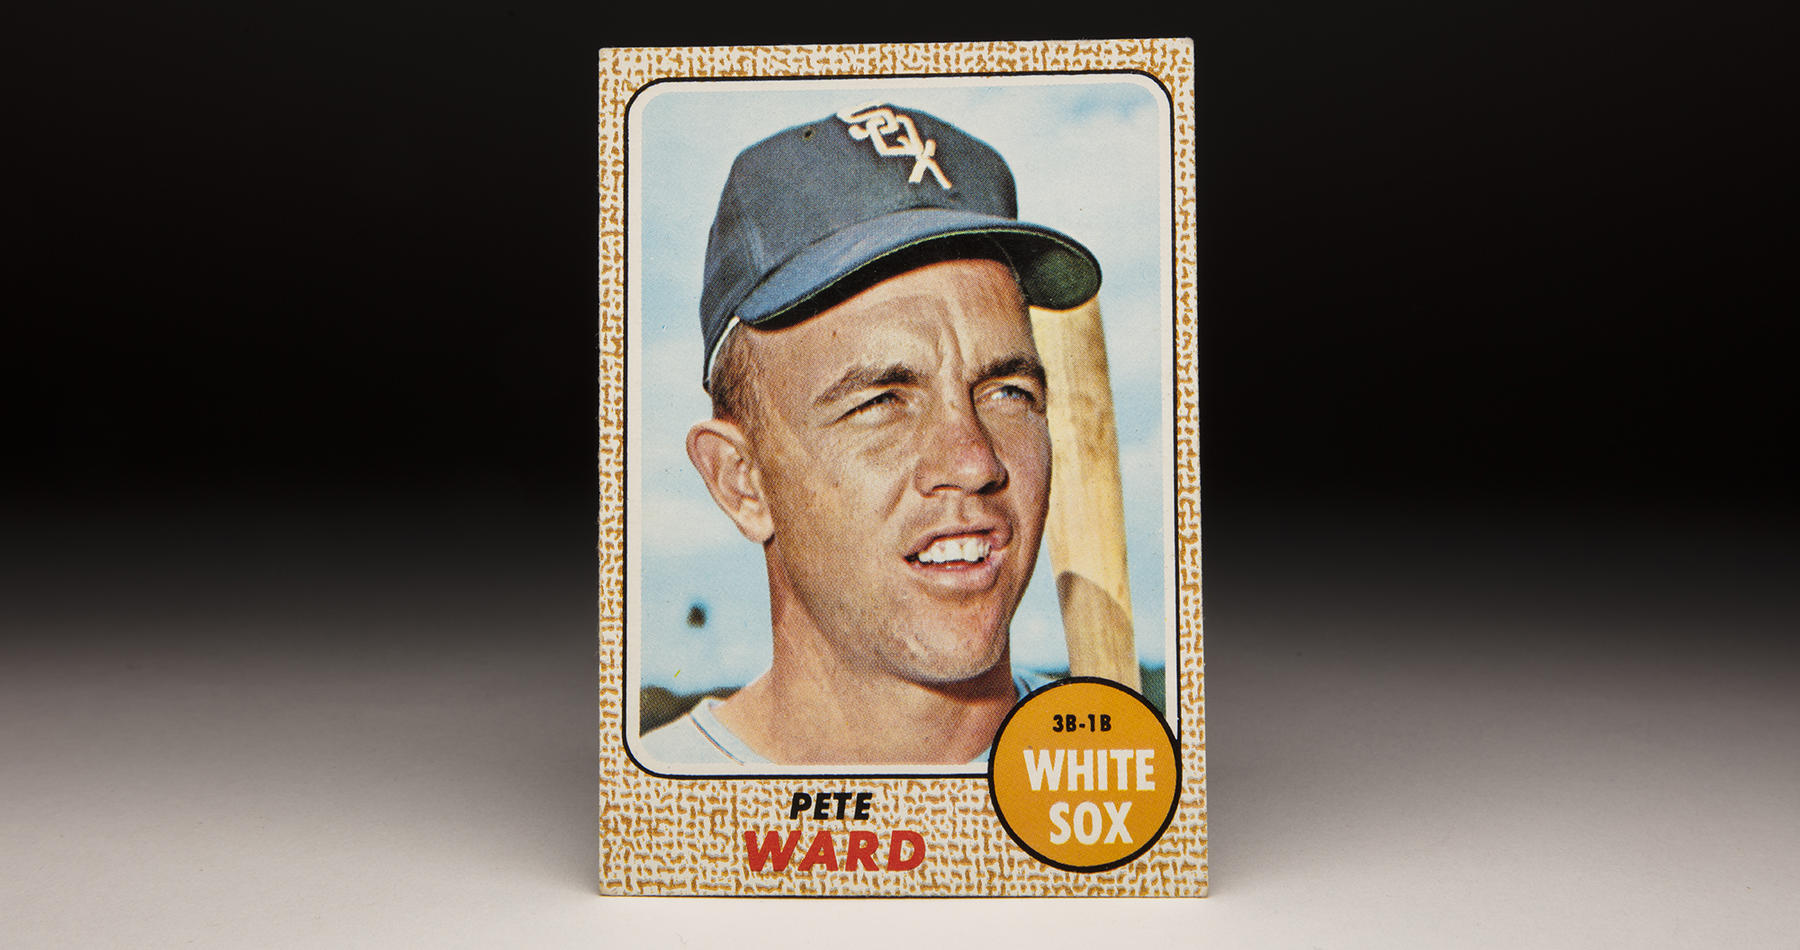 A native of Montreal, Canada, Pete Ward played for the Orioles, White Sox and Yankees from 1962-70. (Milo Stewart Jr./National Baseball Hall of Fame and Museum)